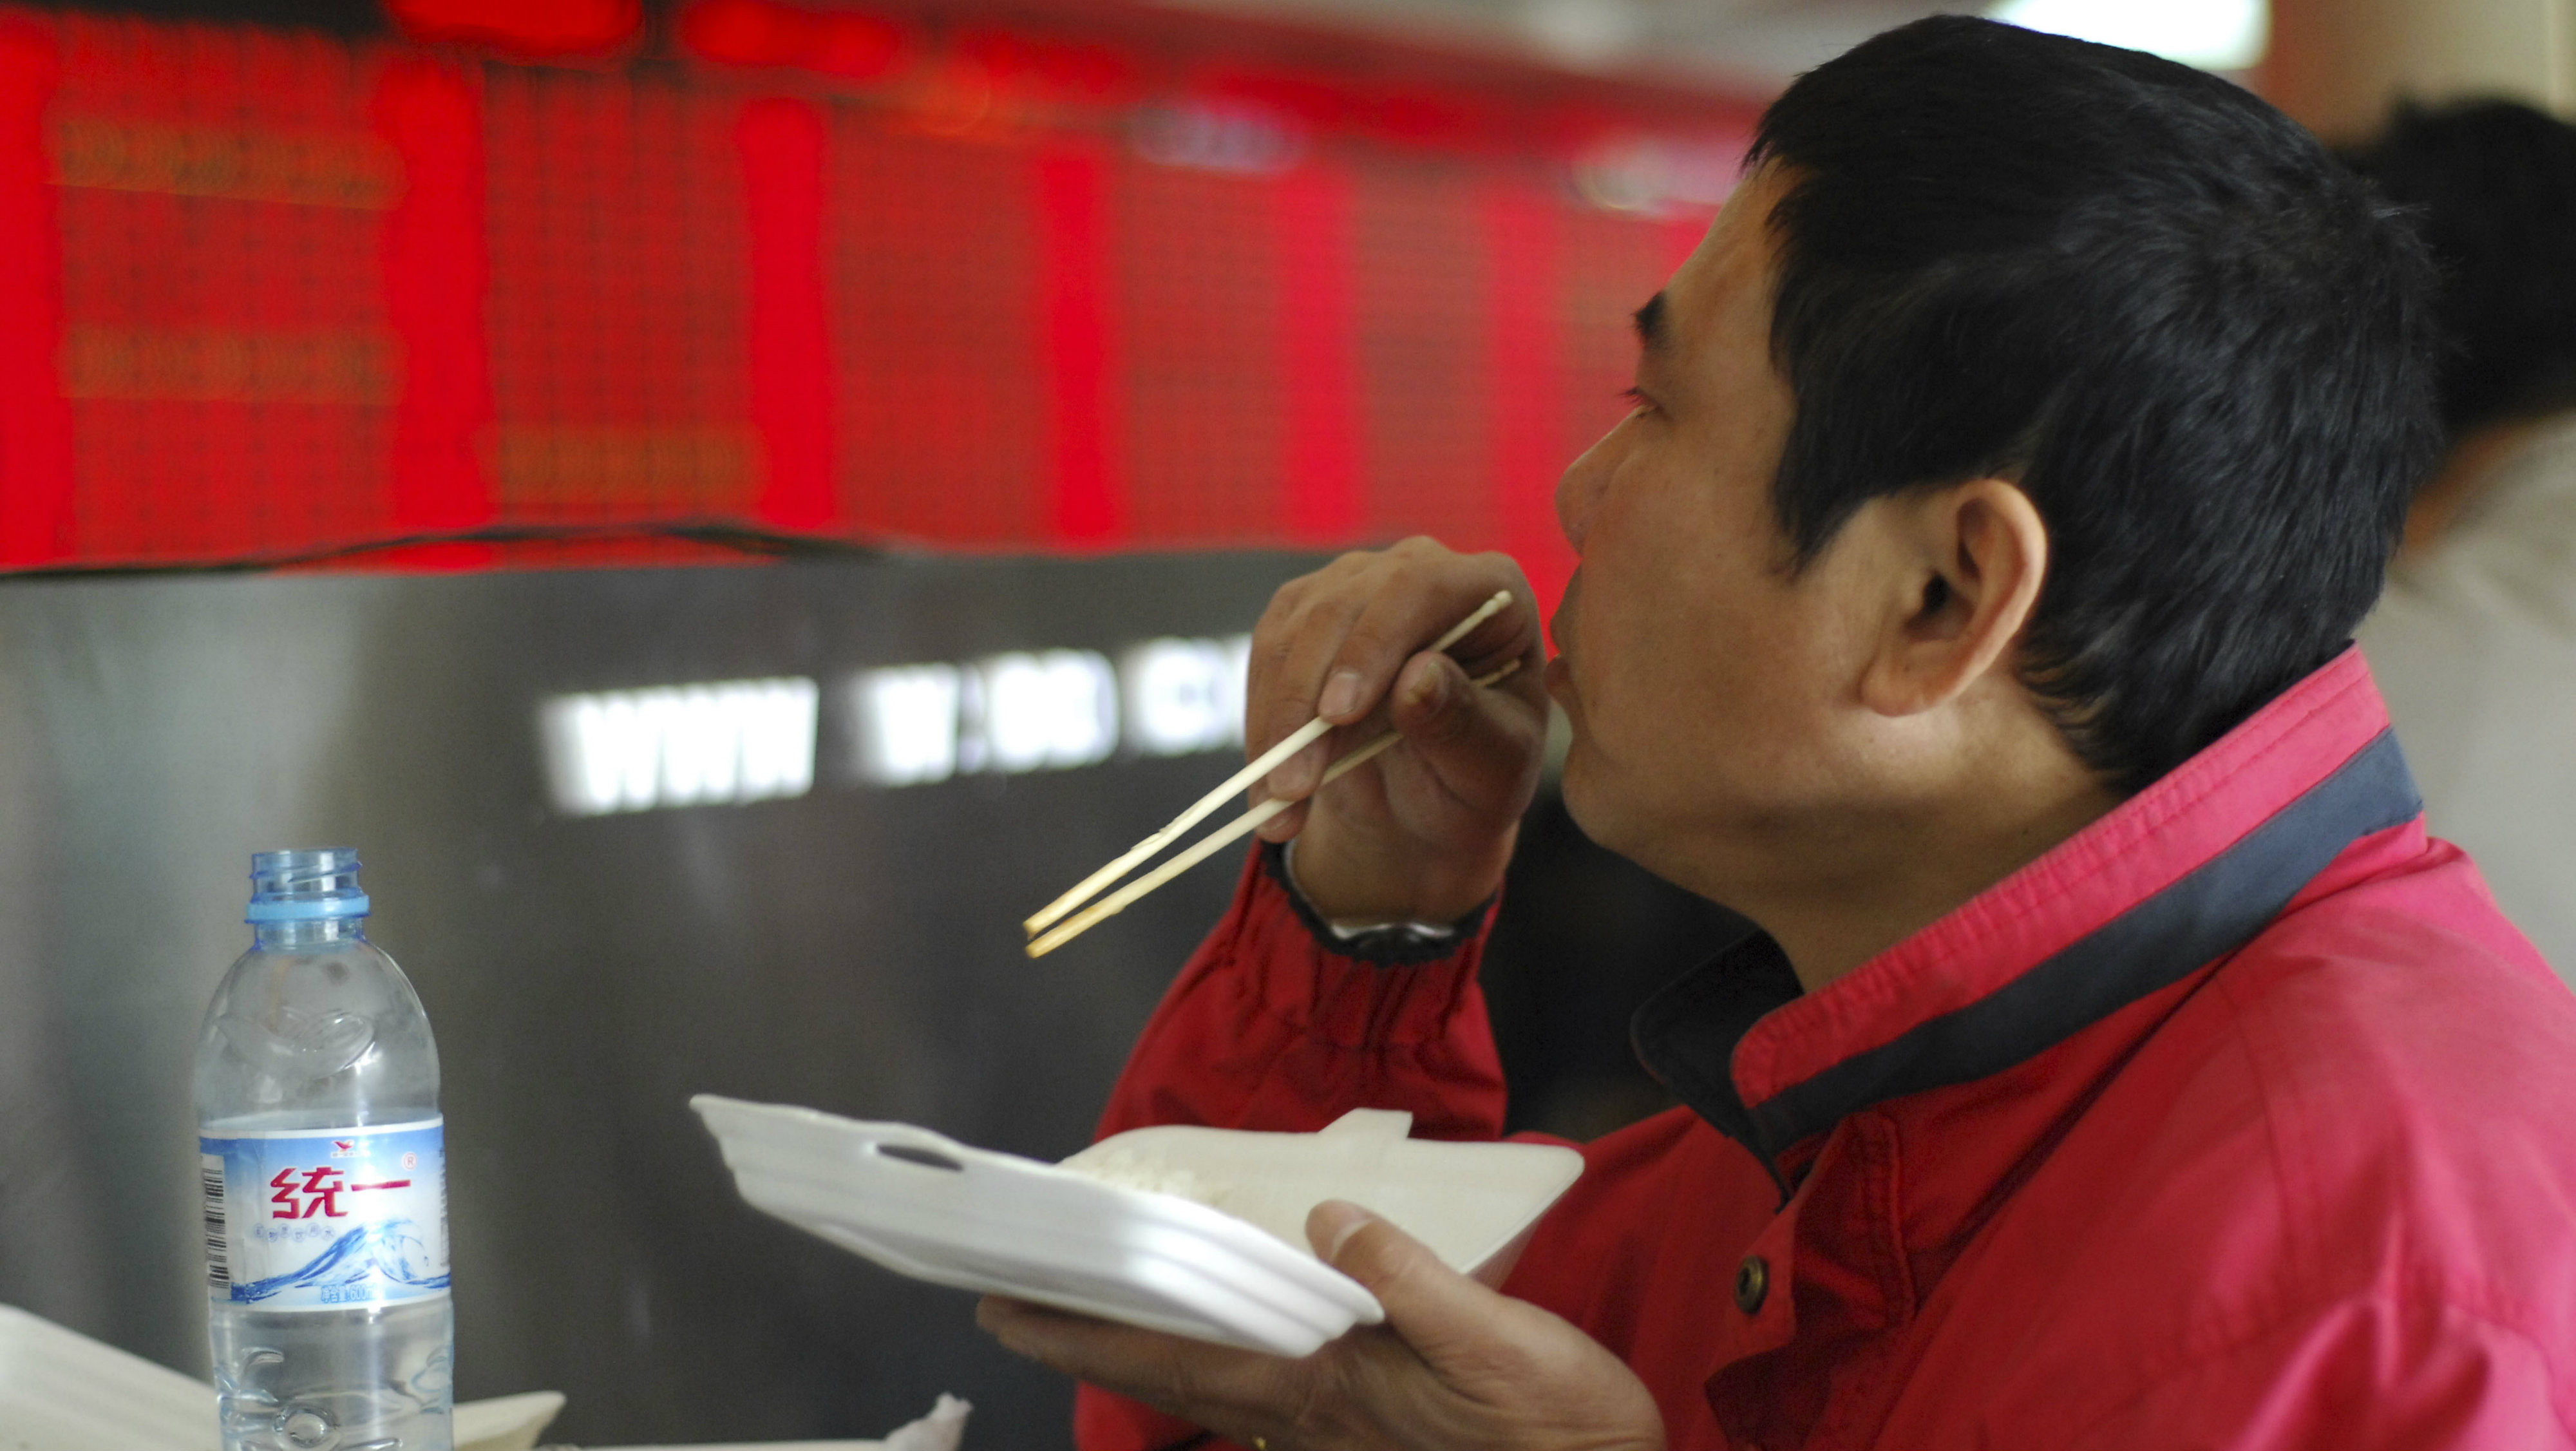 An investor eats before an electronic board in a brokerage hall in Shanghai April 24, 2008. China's main stock index soared over 7 percent in frenzied trade on Thursday after the government cut the share trading tax, seeking to end a bear market that had slashed stock prices by half in six months.